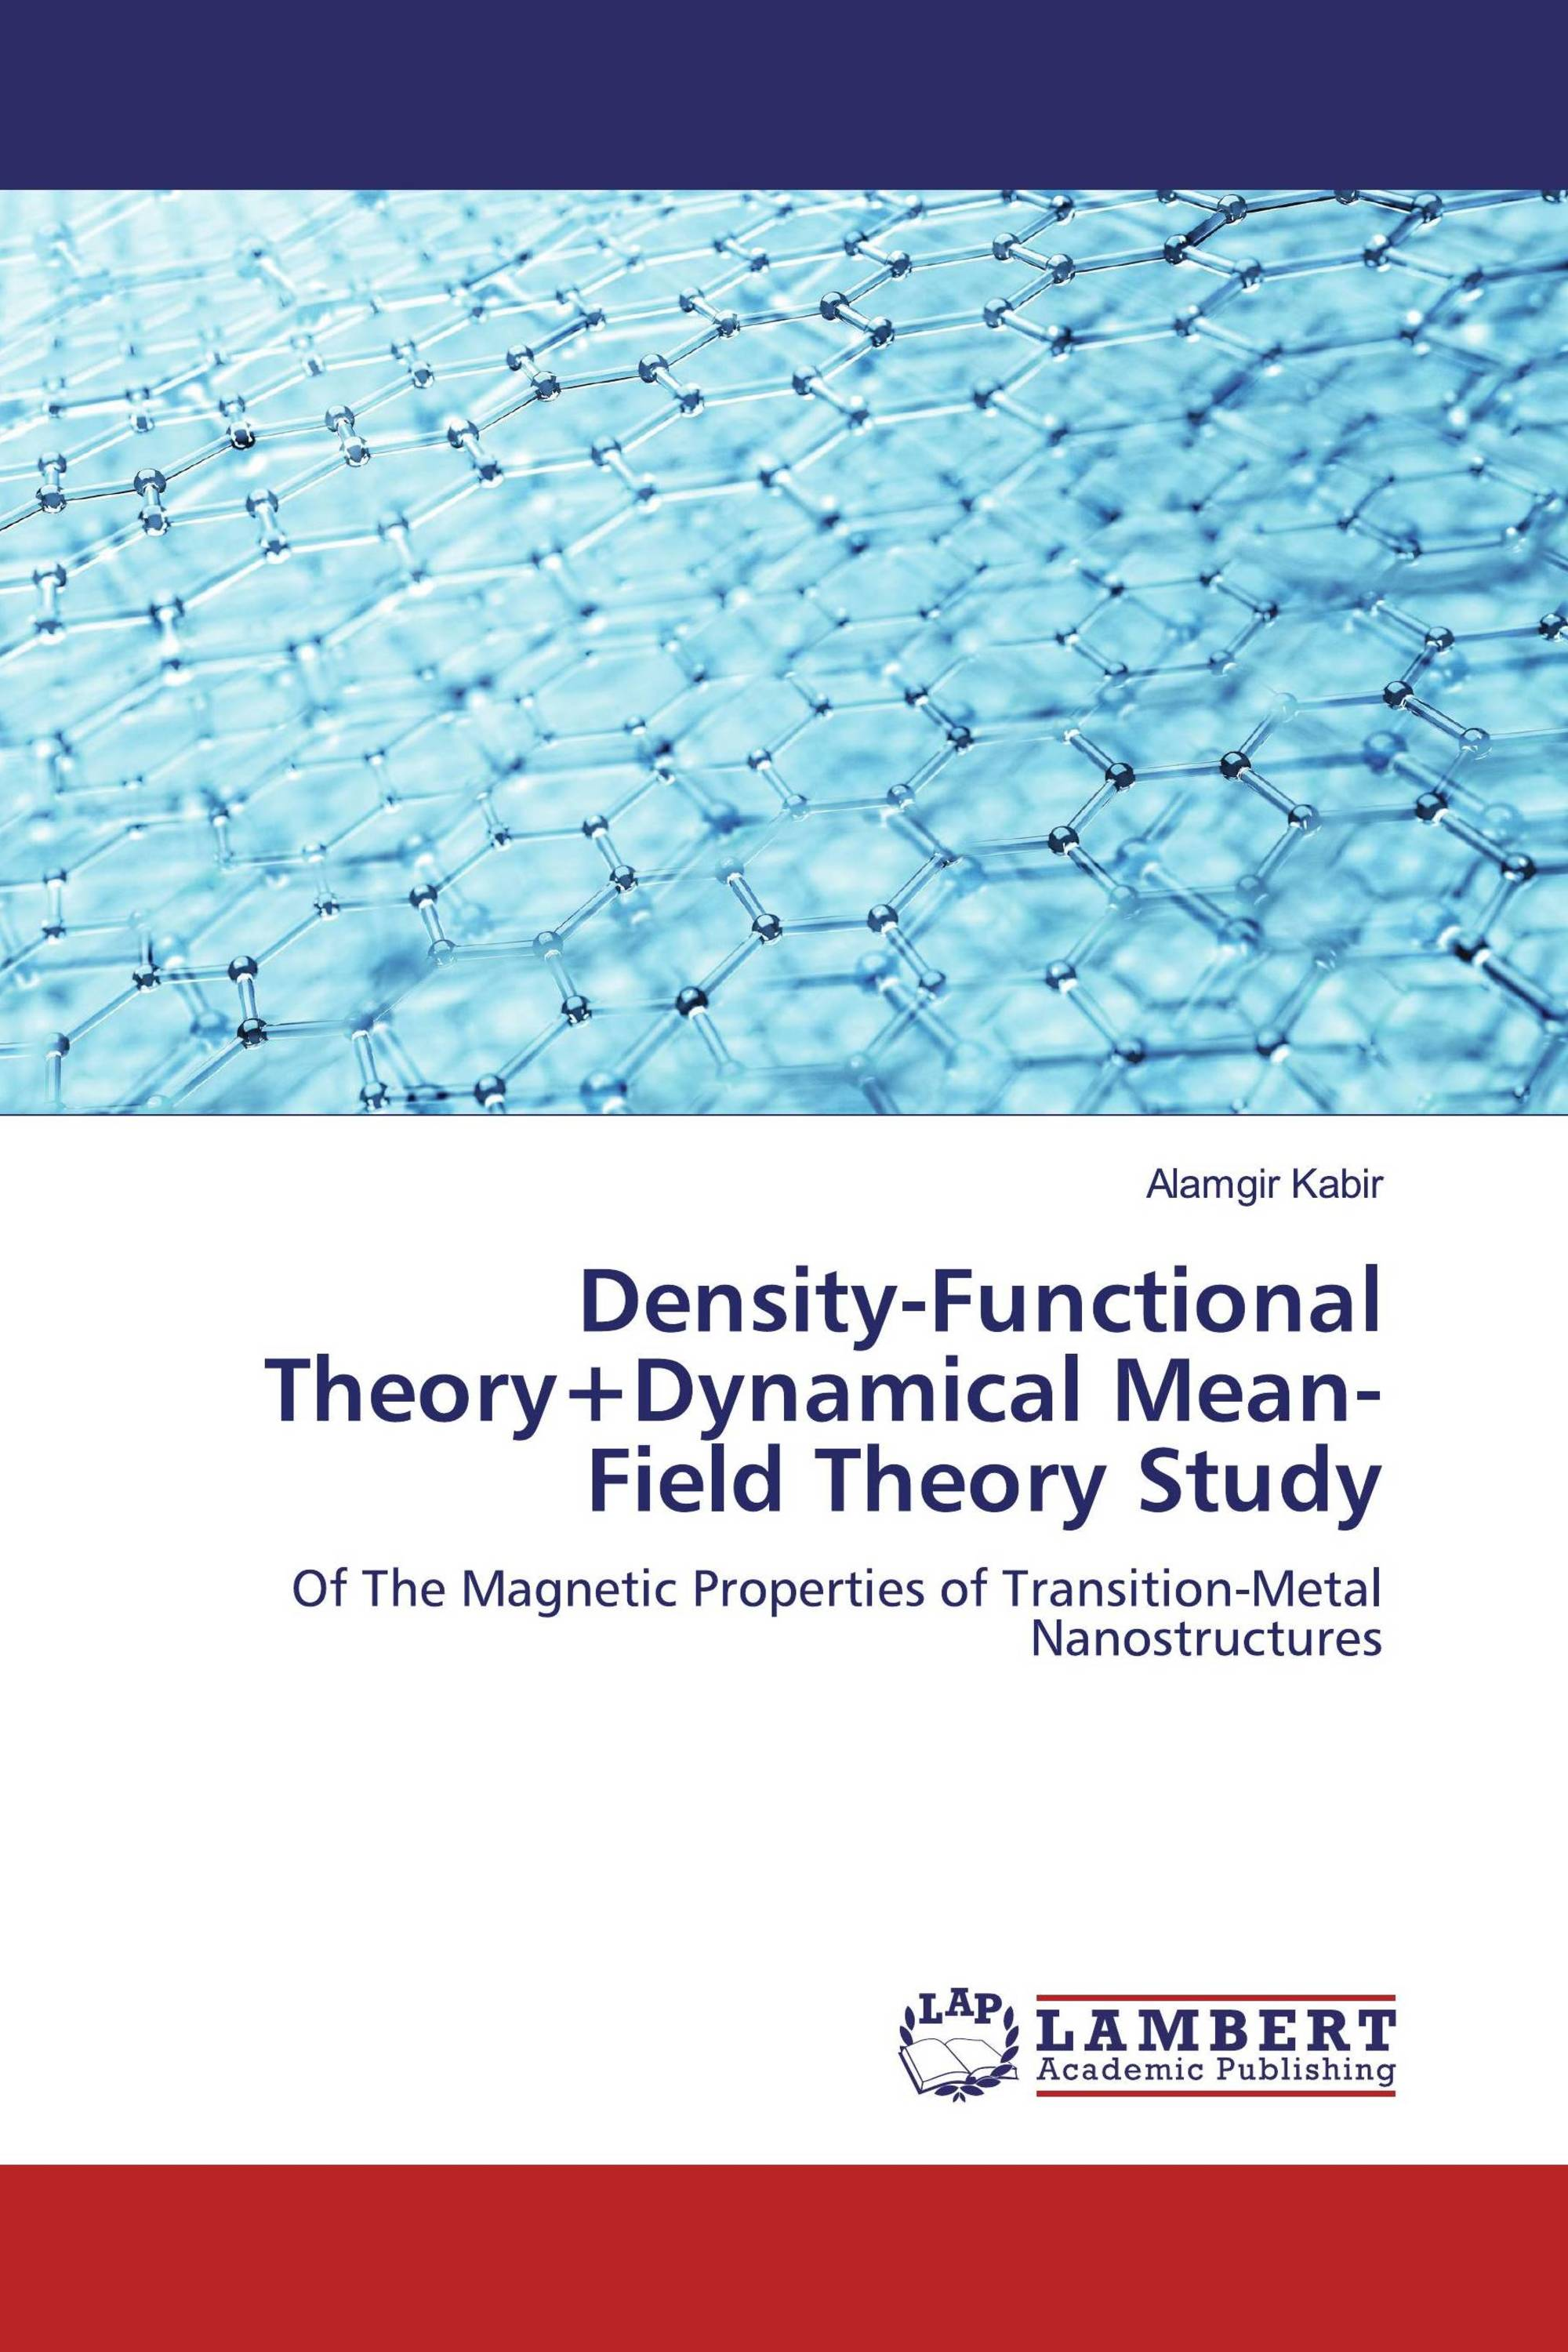 Density-Functional Theory+Dynamical Mean-Field Theory Study